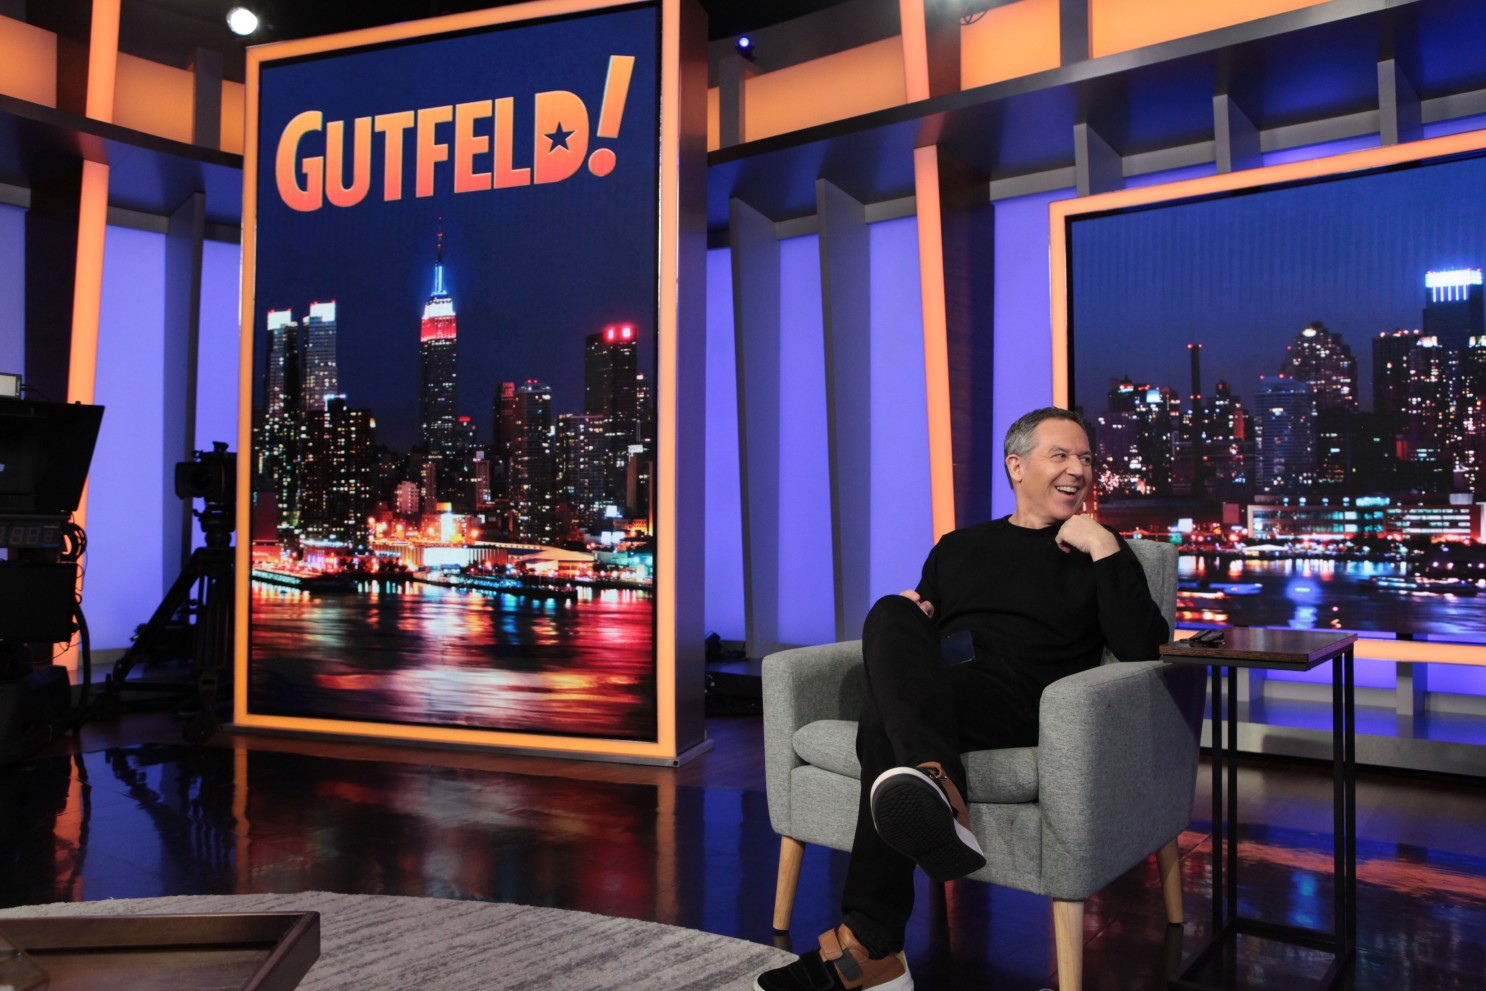 Who is Elena Moussa, Greg Gutfeld wife? - See her career facts, net worth, and marriage